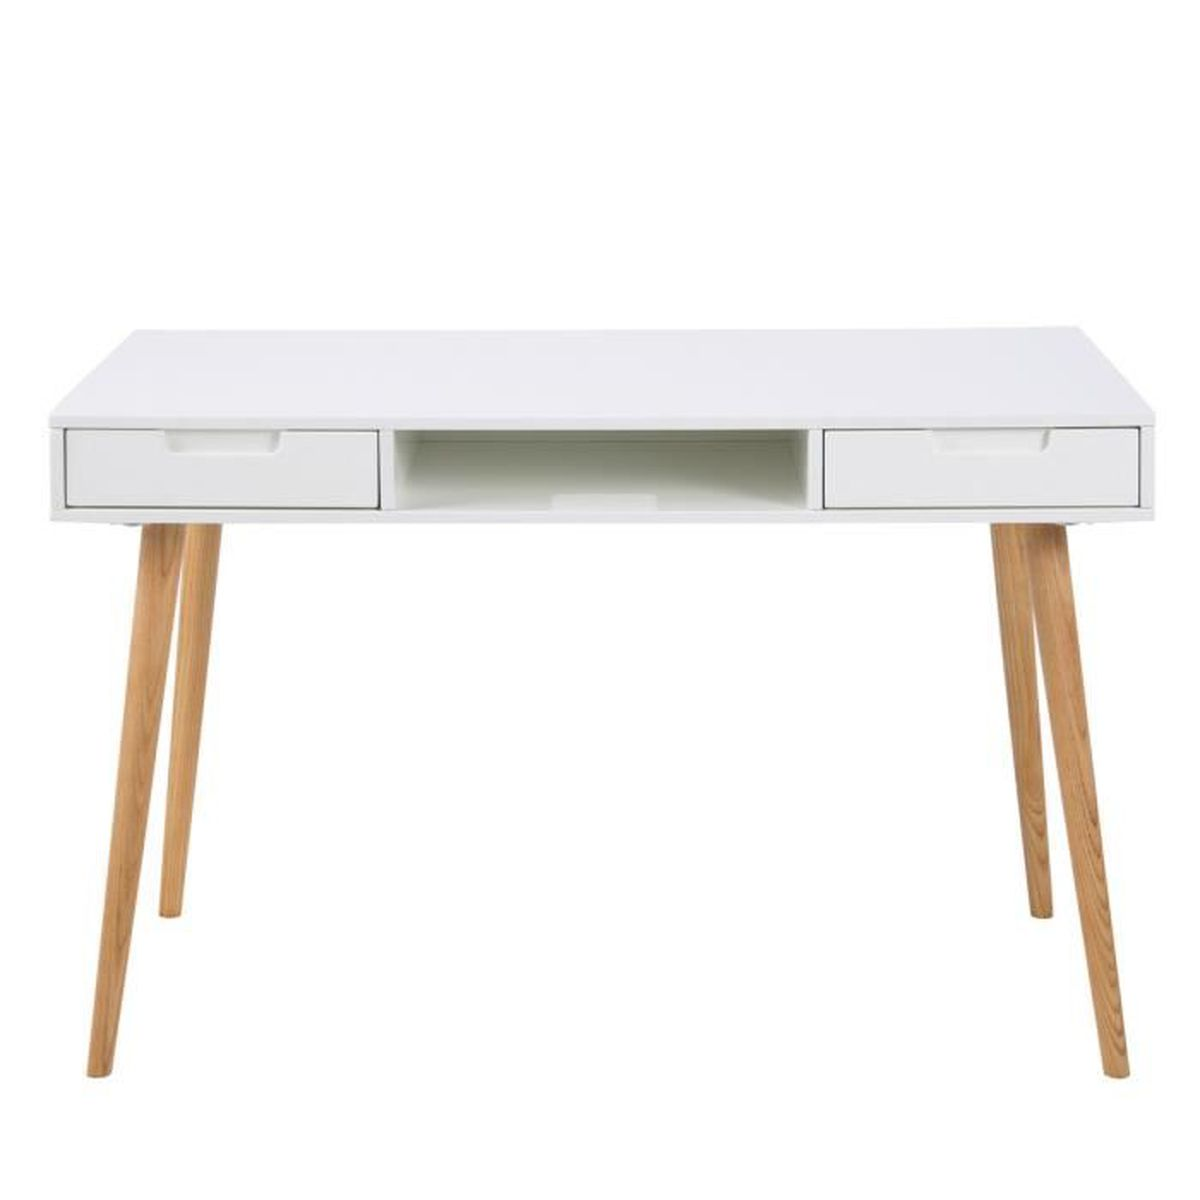 bureau elisabeth 120 cm 2 tiroirs blanc bois bois blanc achat vente bureau bureau elisabeth. Black Bedroom Furniture Sets. Home Design Ideas